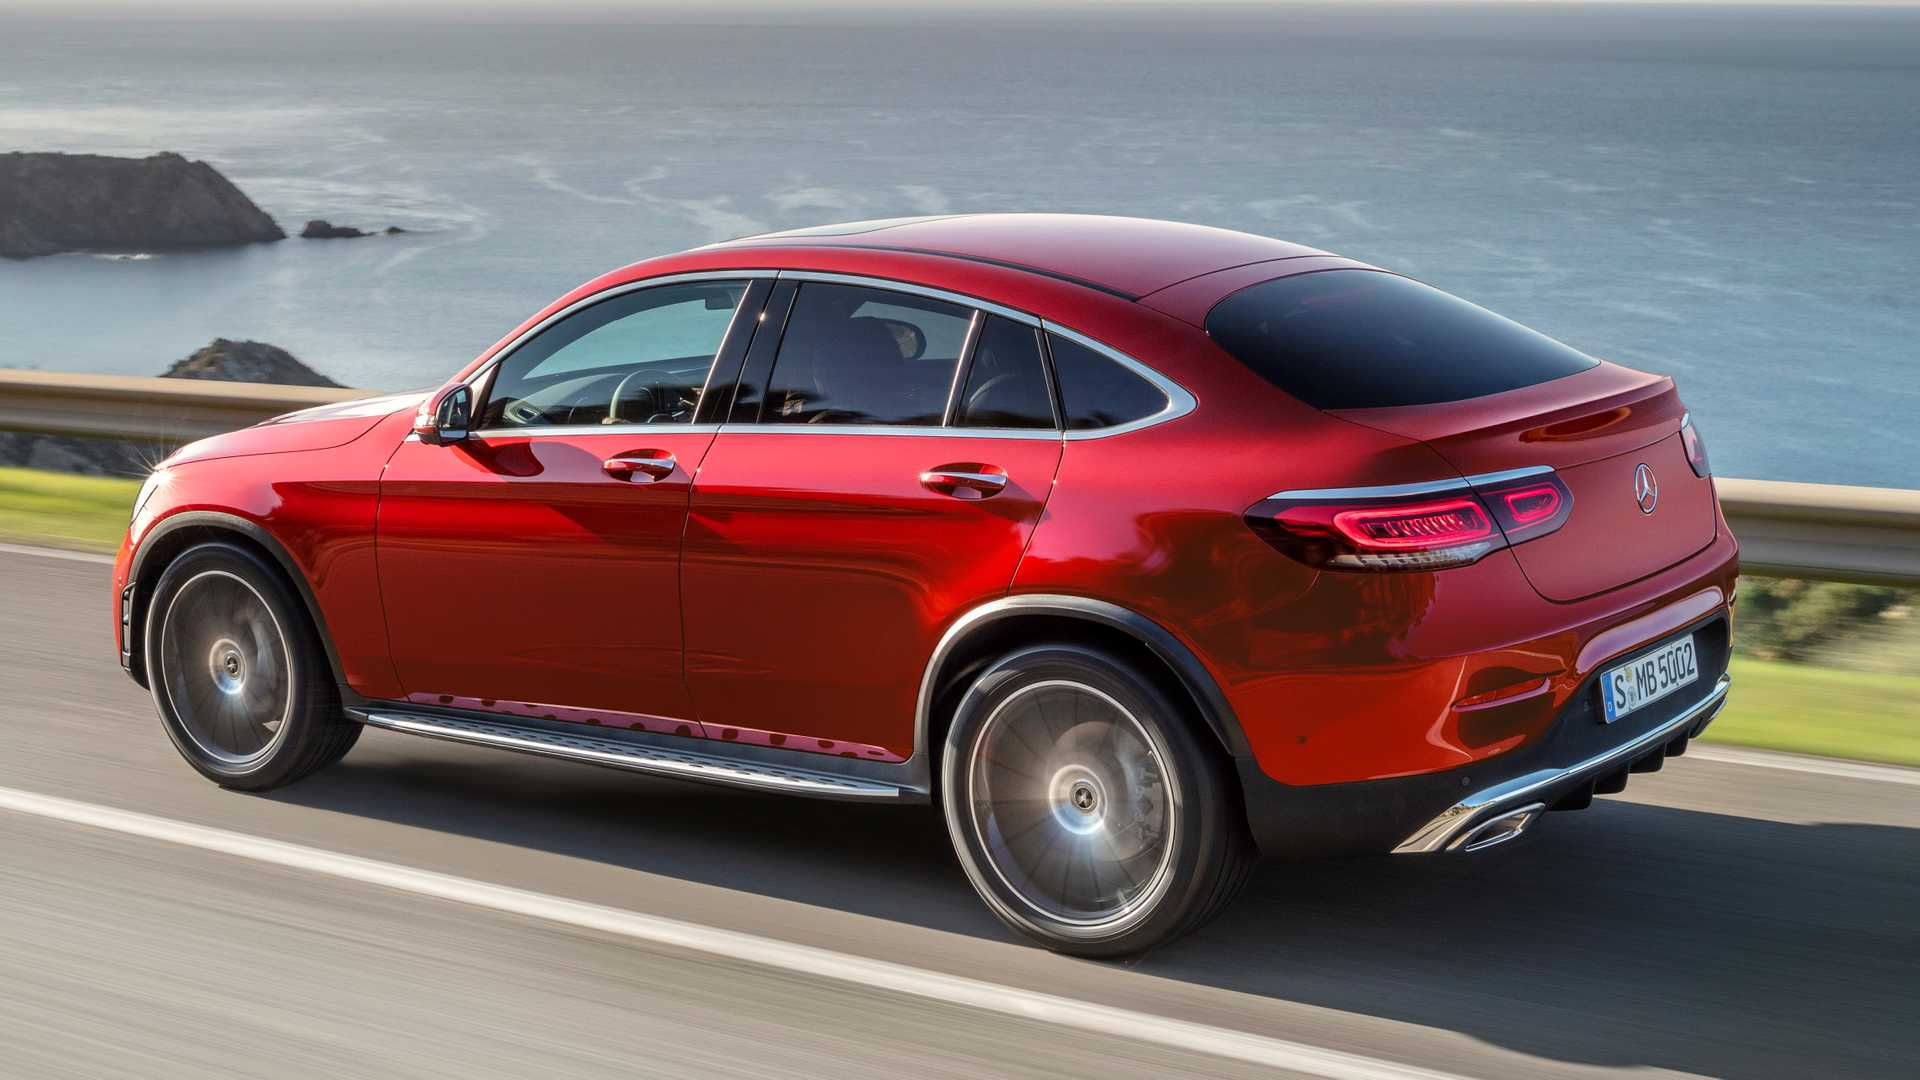 2020 Mercedes Benz Glc Coupe Gets Refreshed Face More Power Update